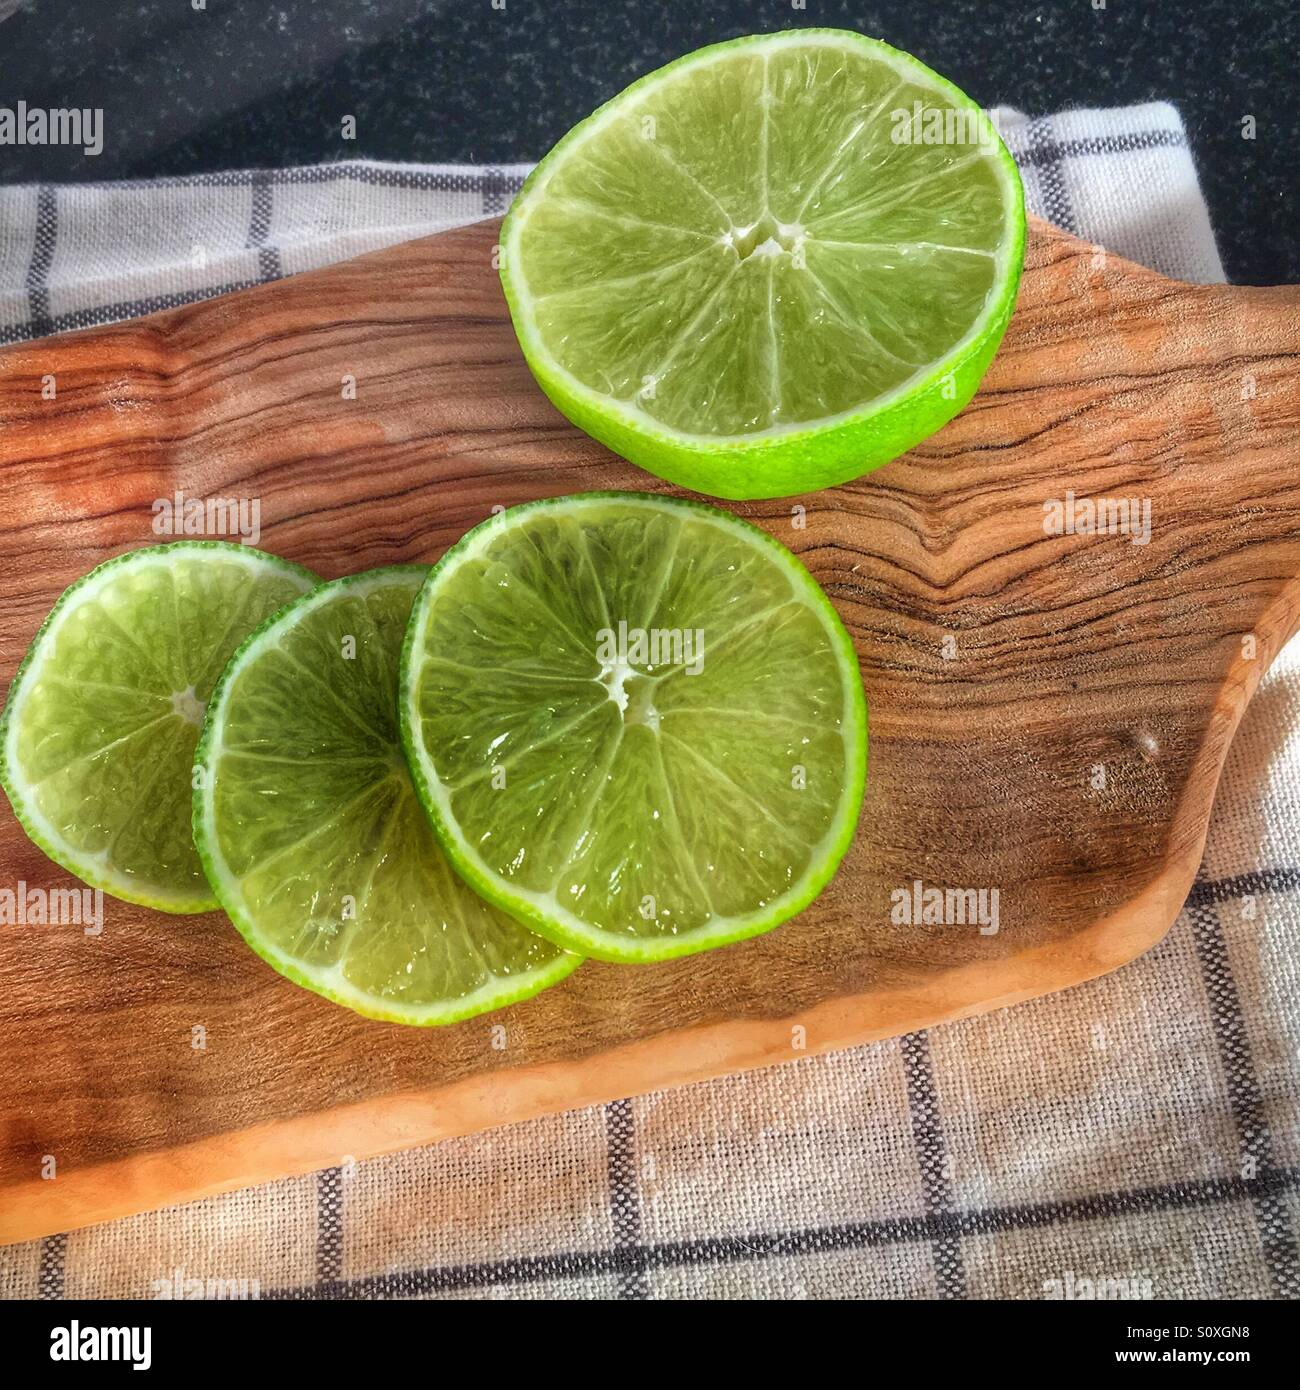 Sliced limes resting on a olive wood platter - Stock Image